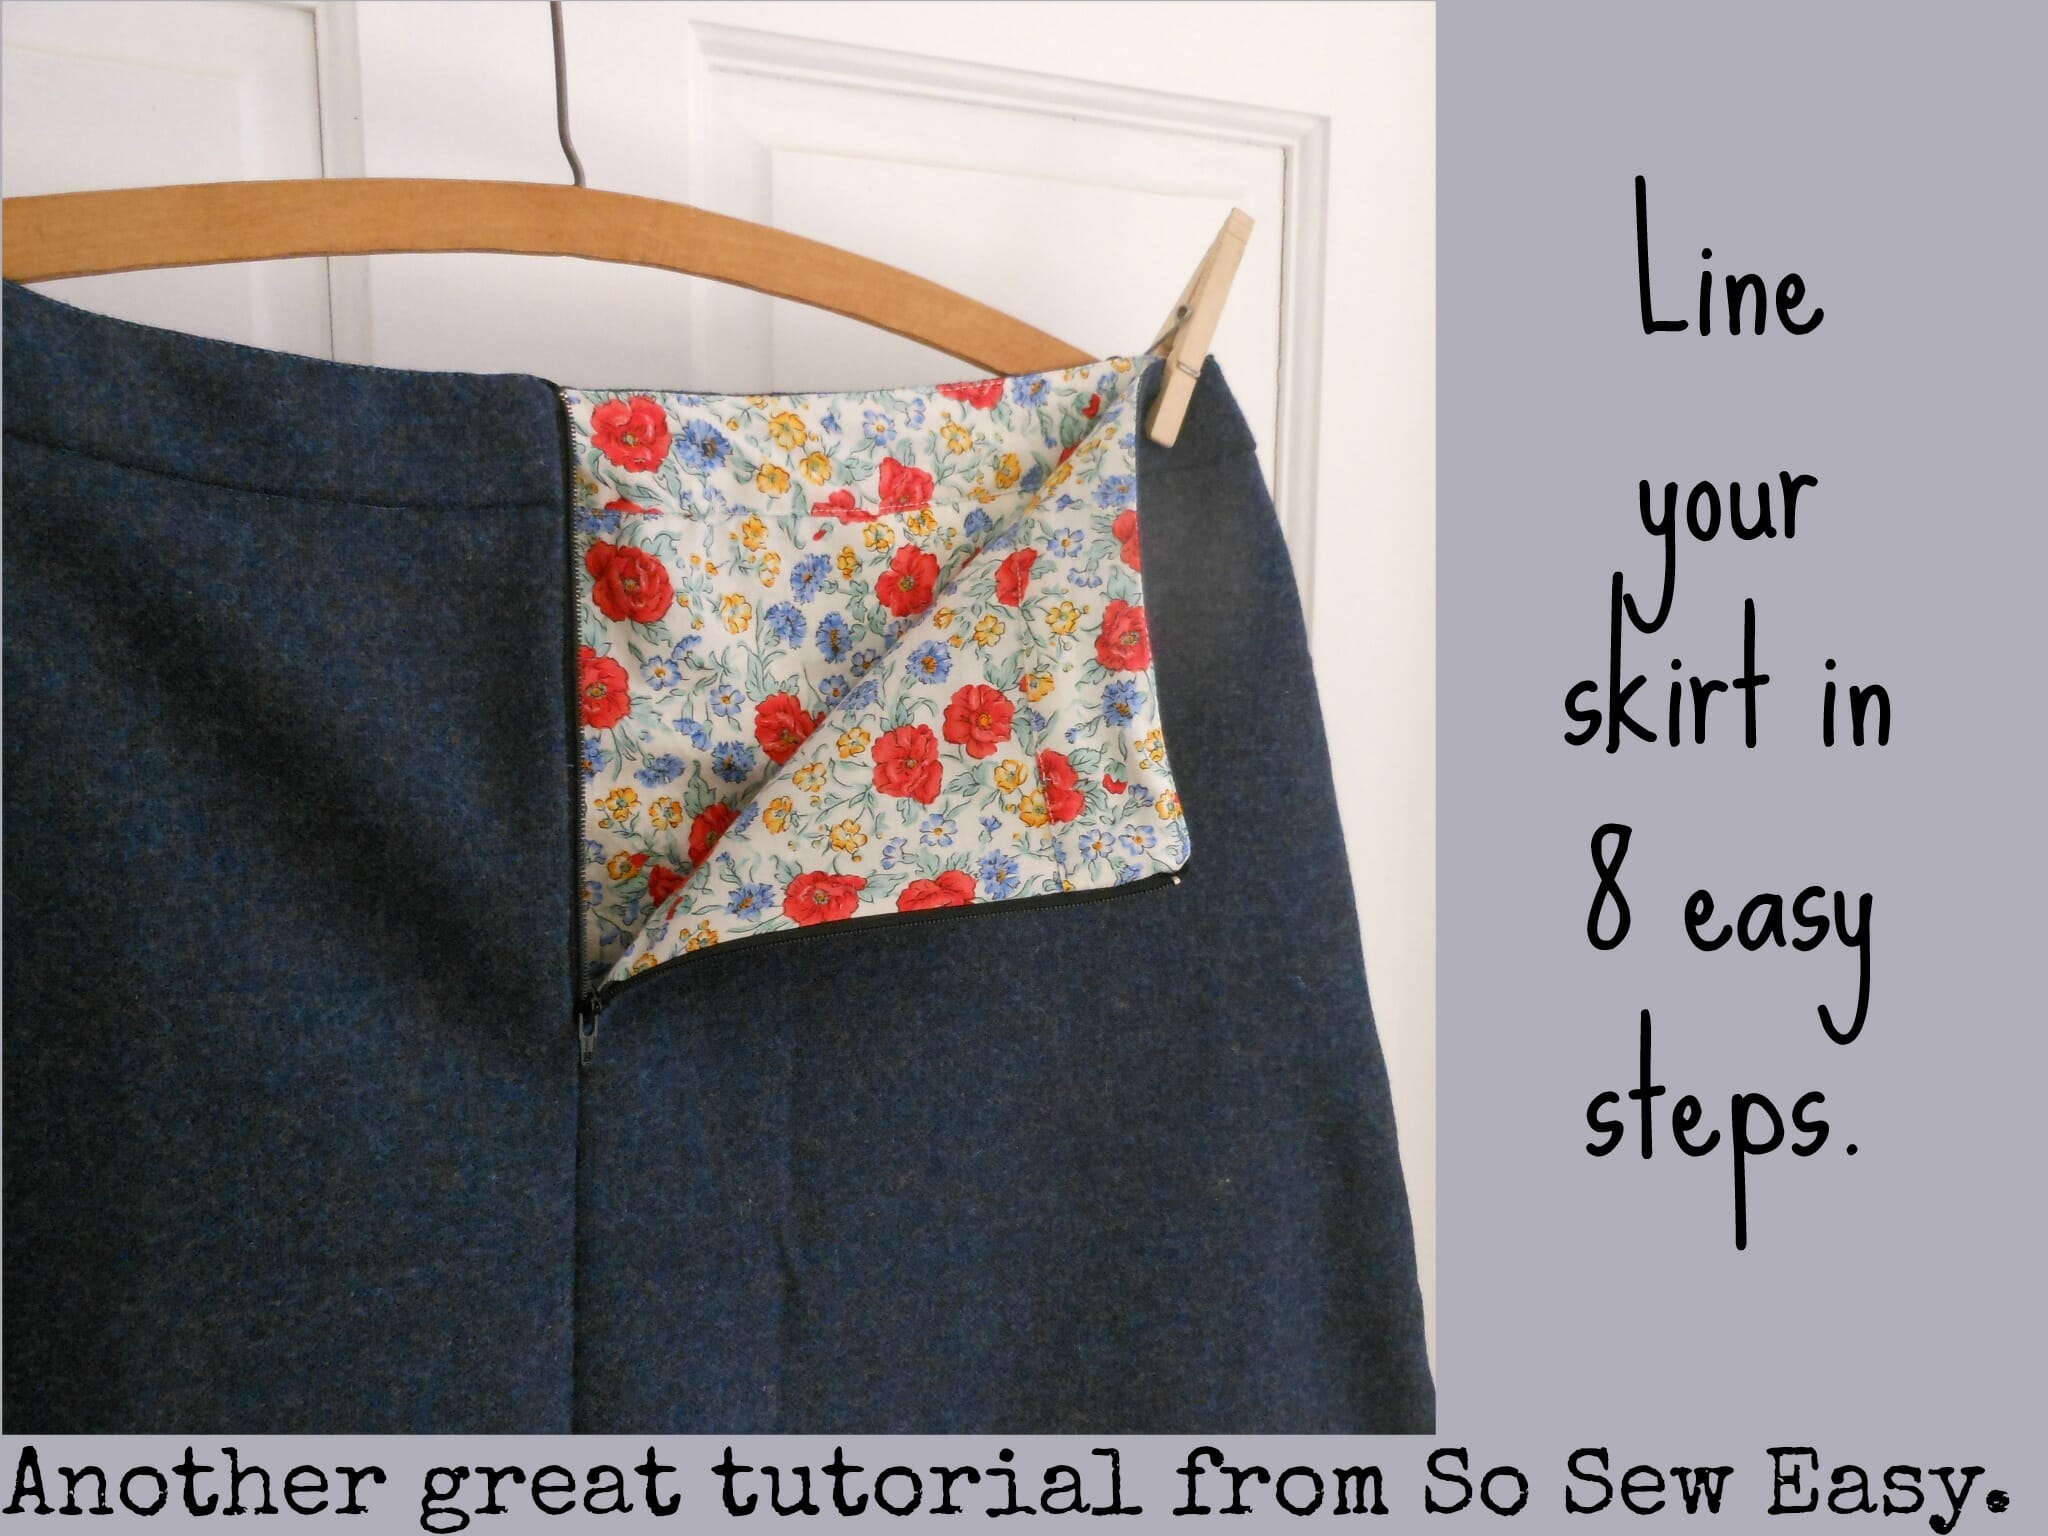 How to Line a Skirt in 8 Easy Steps - So Sew Easy